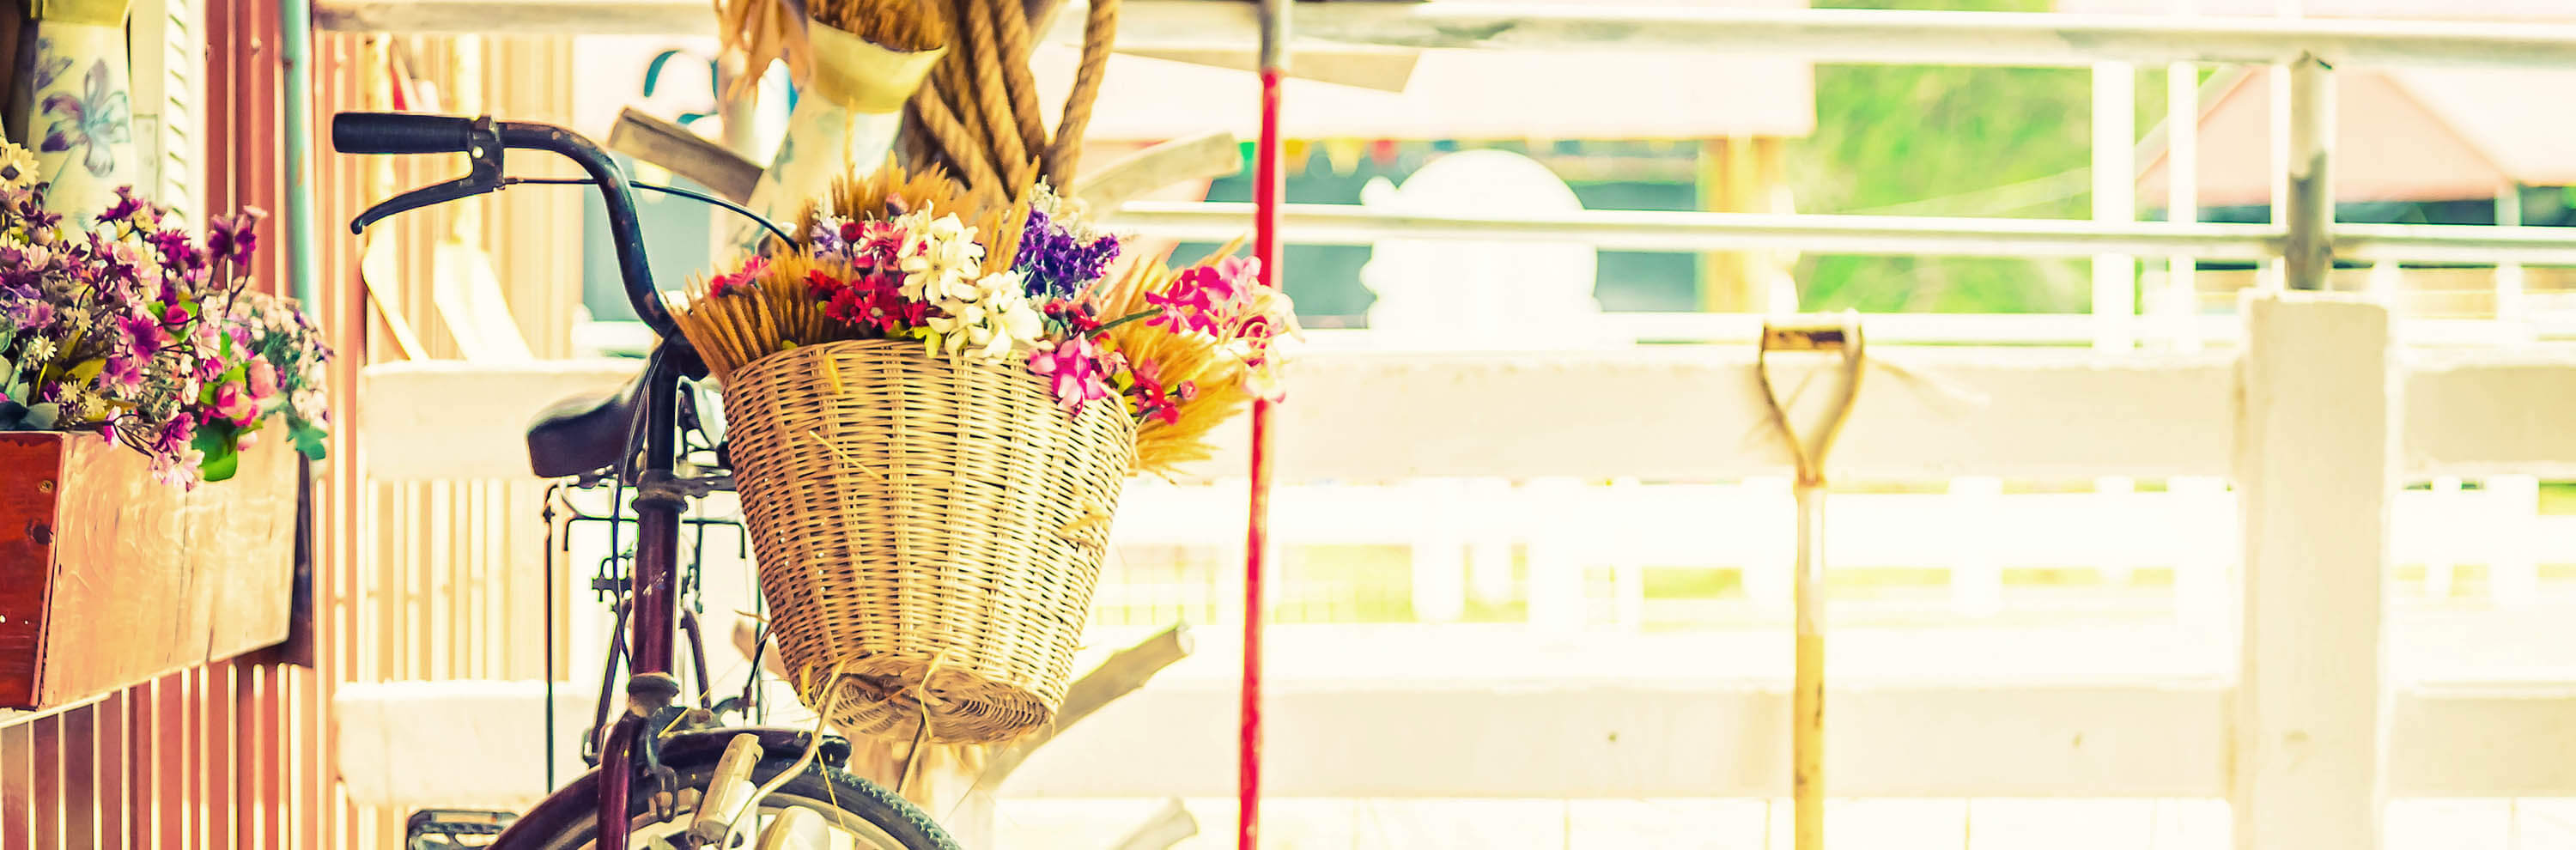 Vintage bicycle with flower on basket - vintage filter